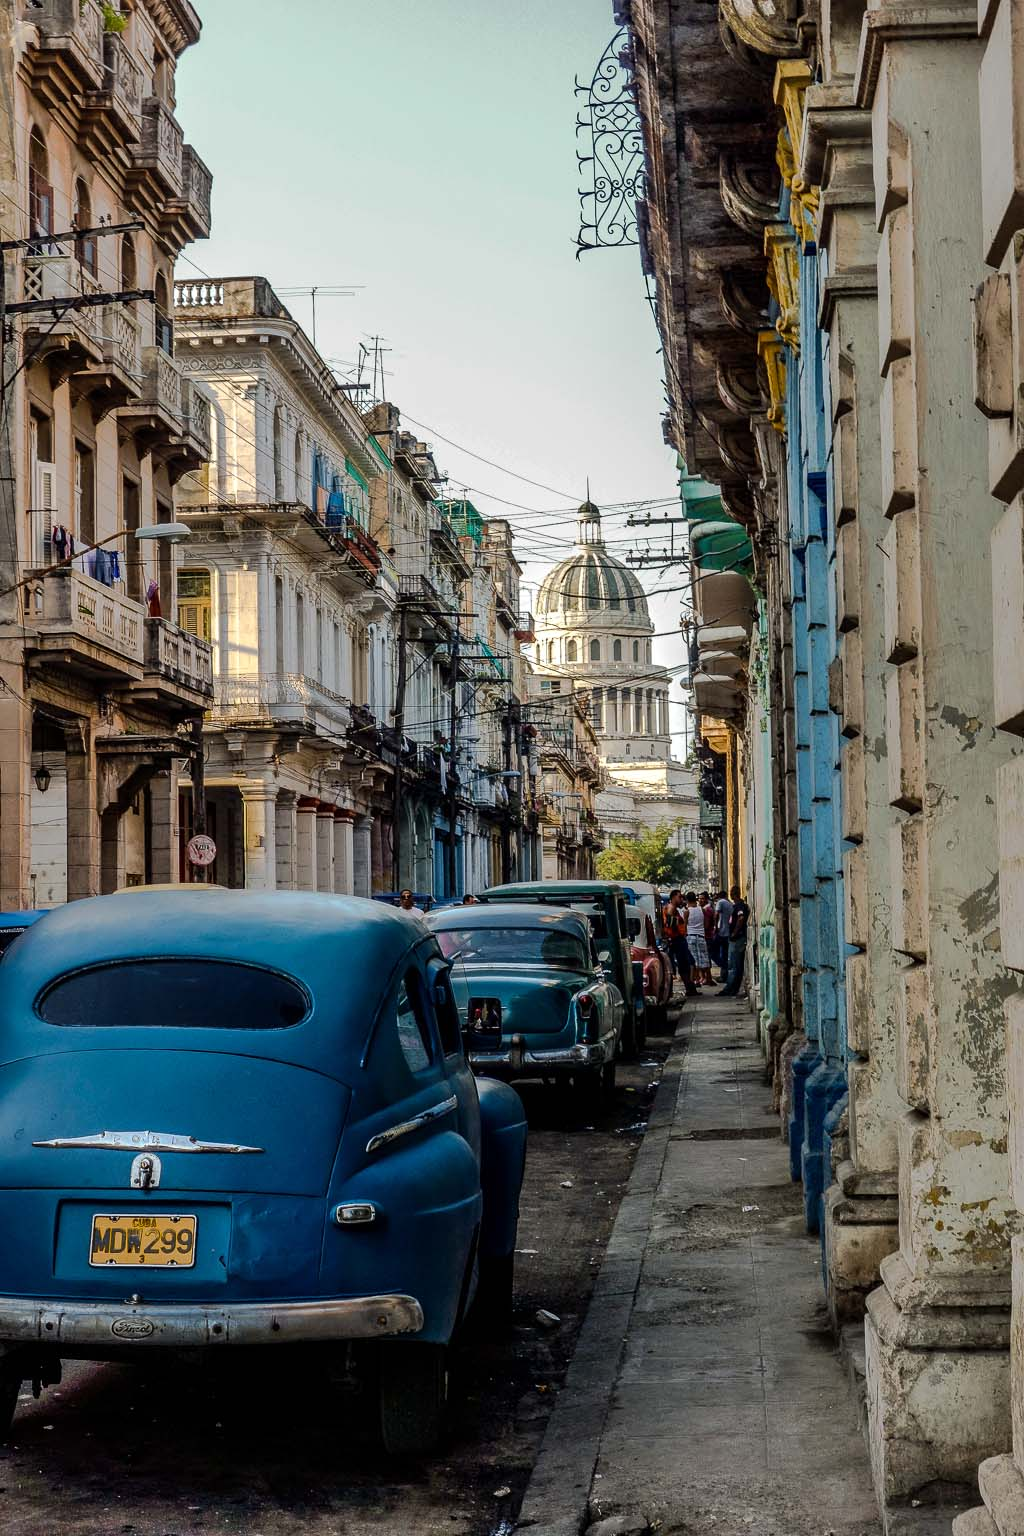 Old parked cars near Capital building Havana Cuba